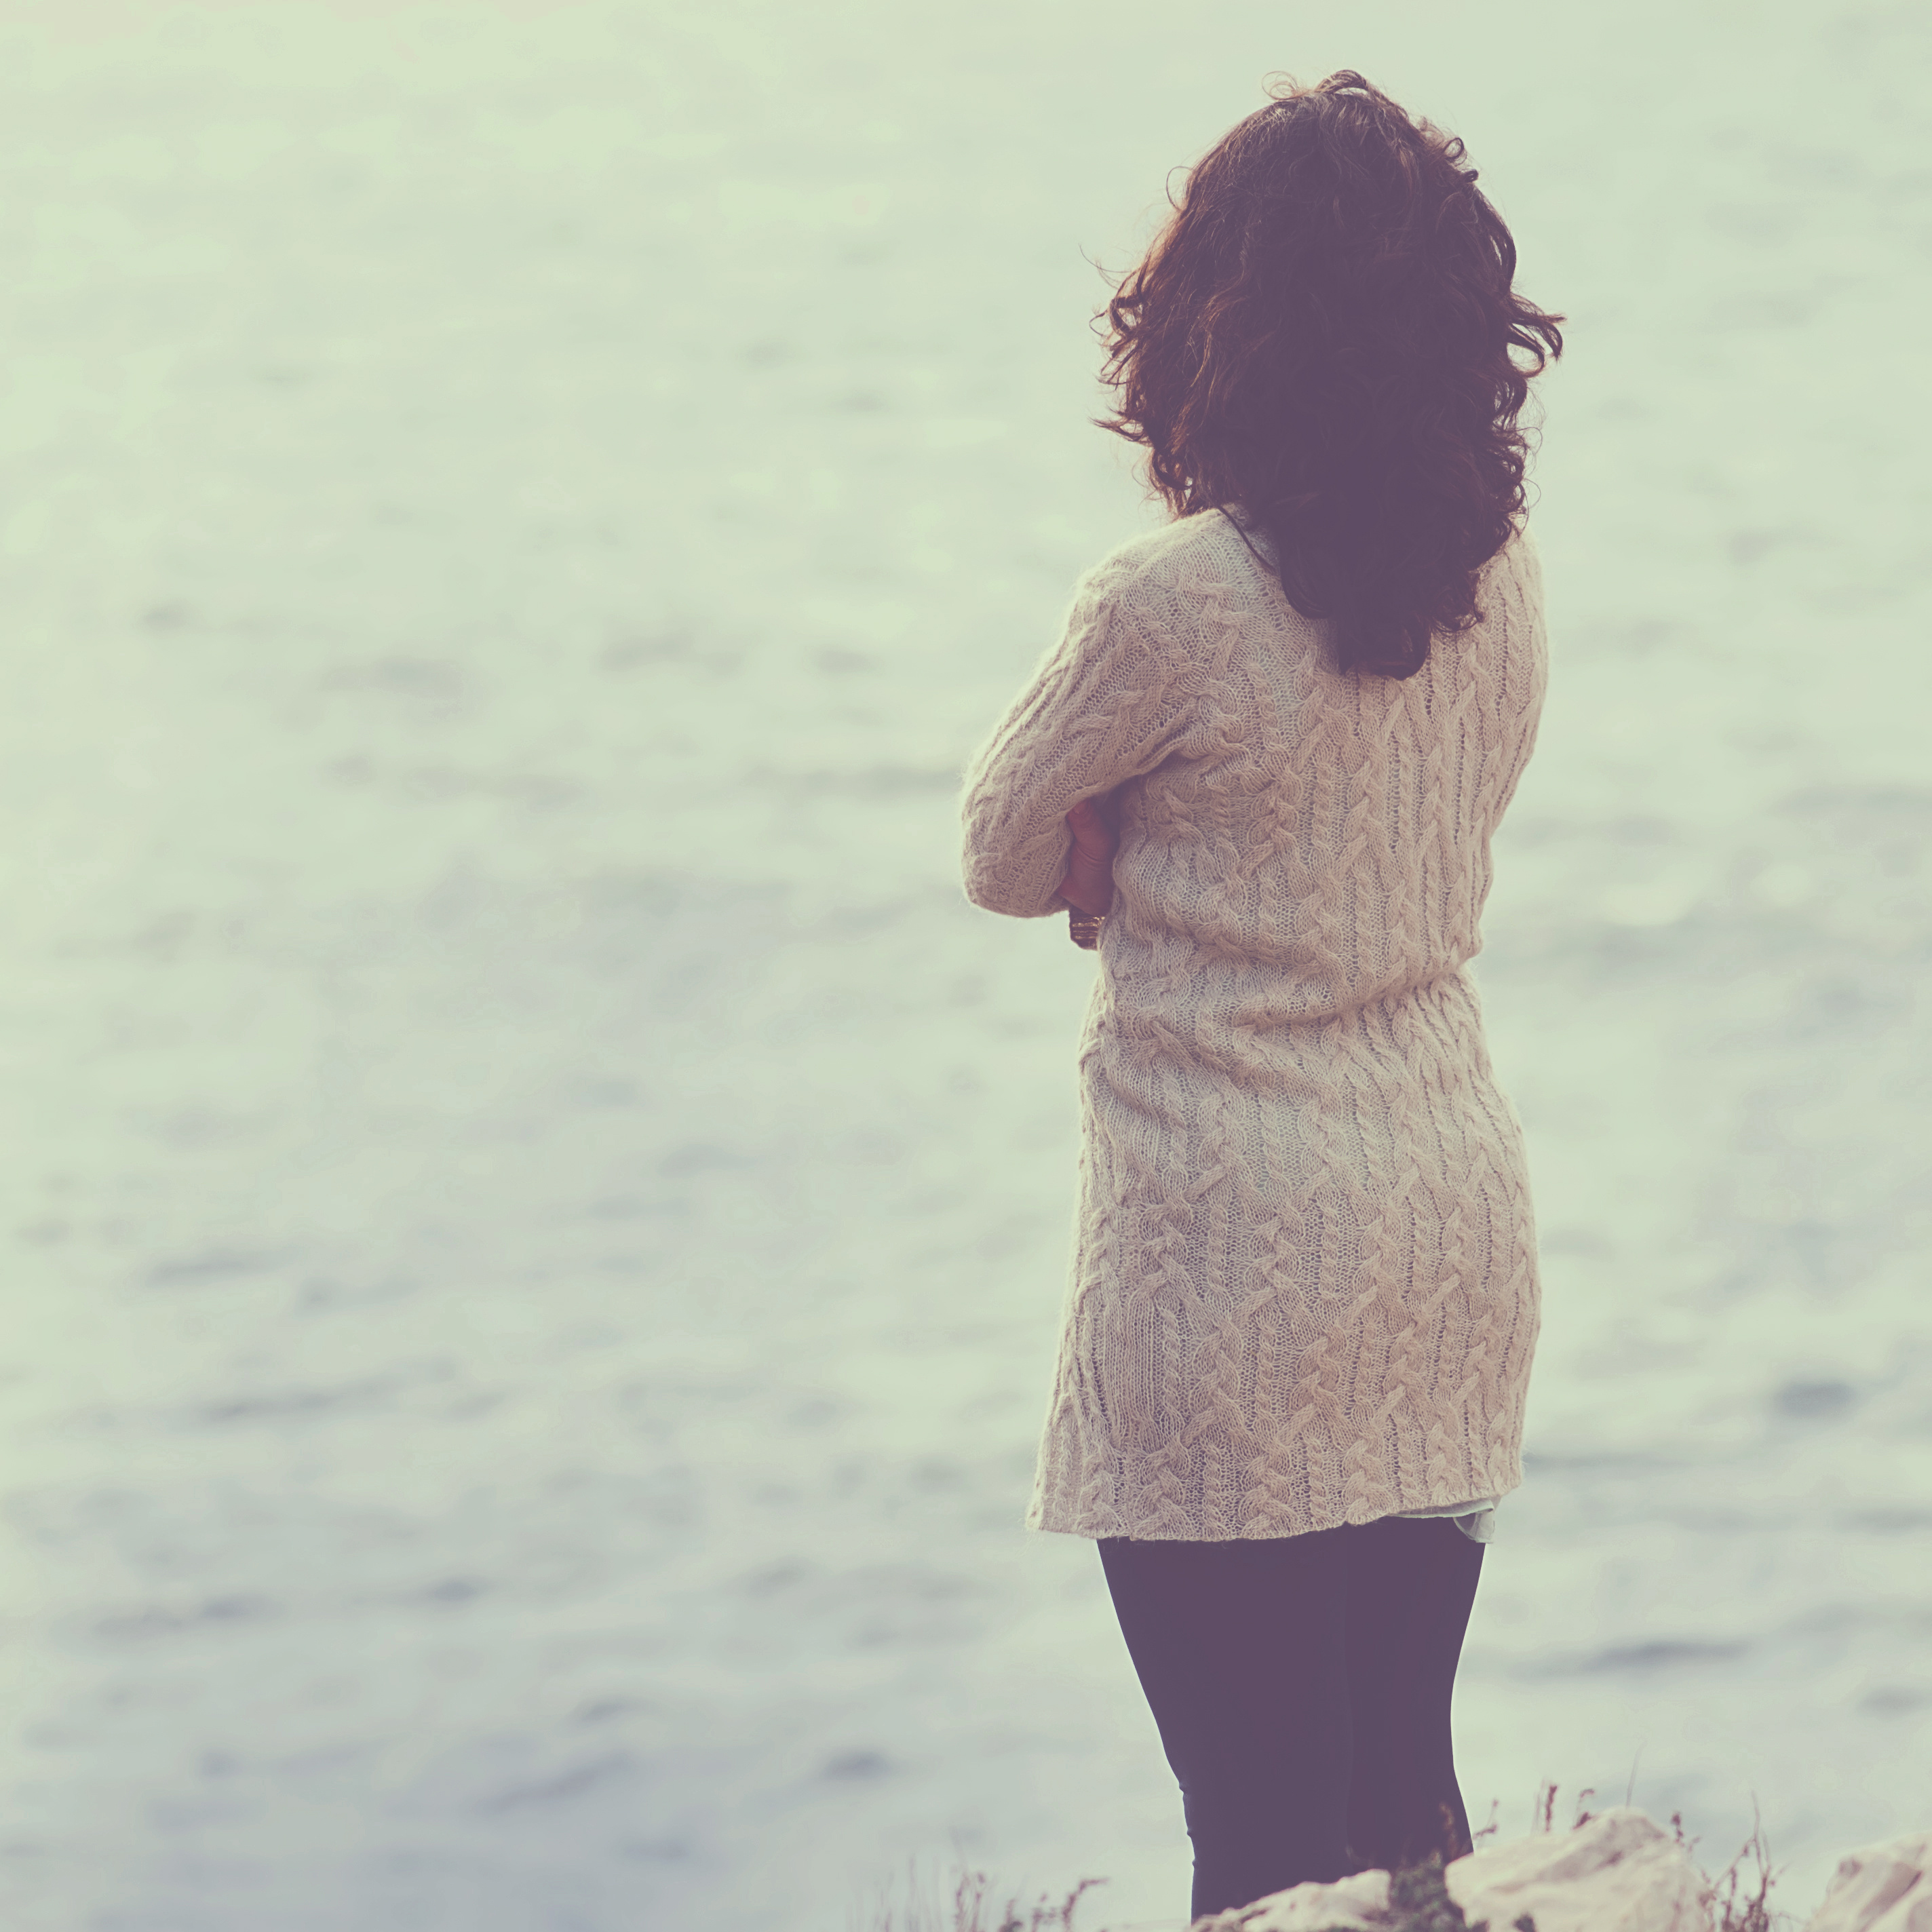 Woman looking out at the water and thinking about Prescription Stimulant Misuse